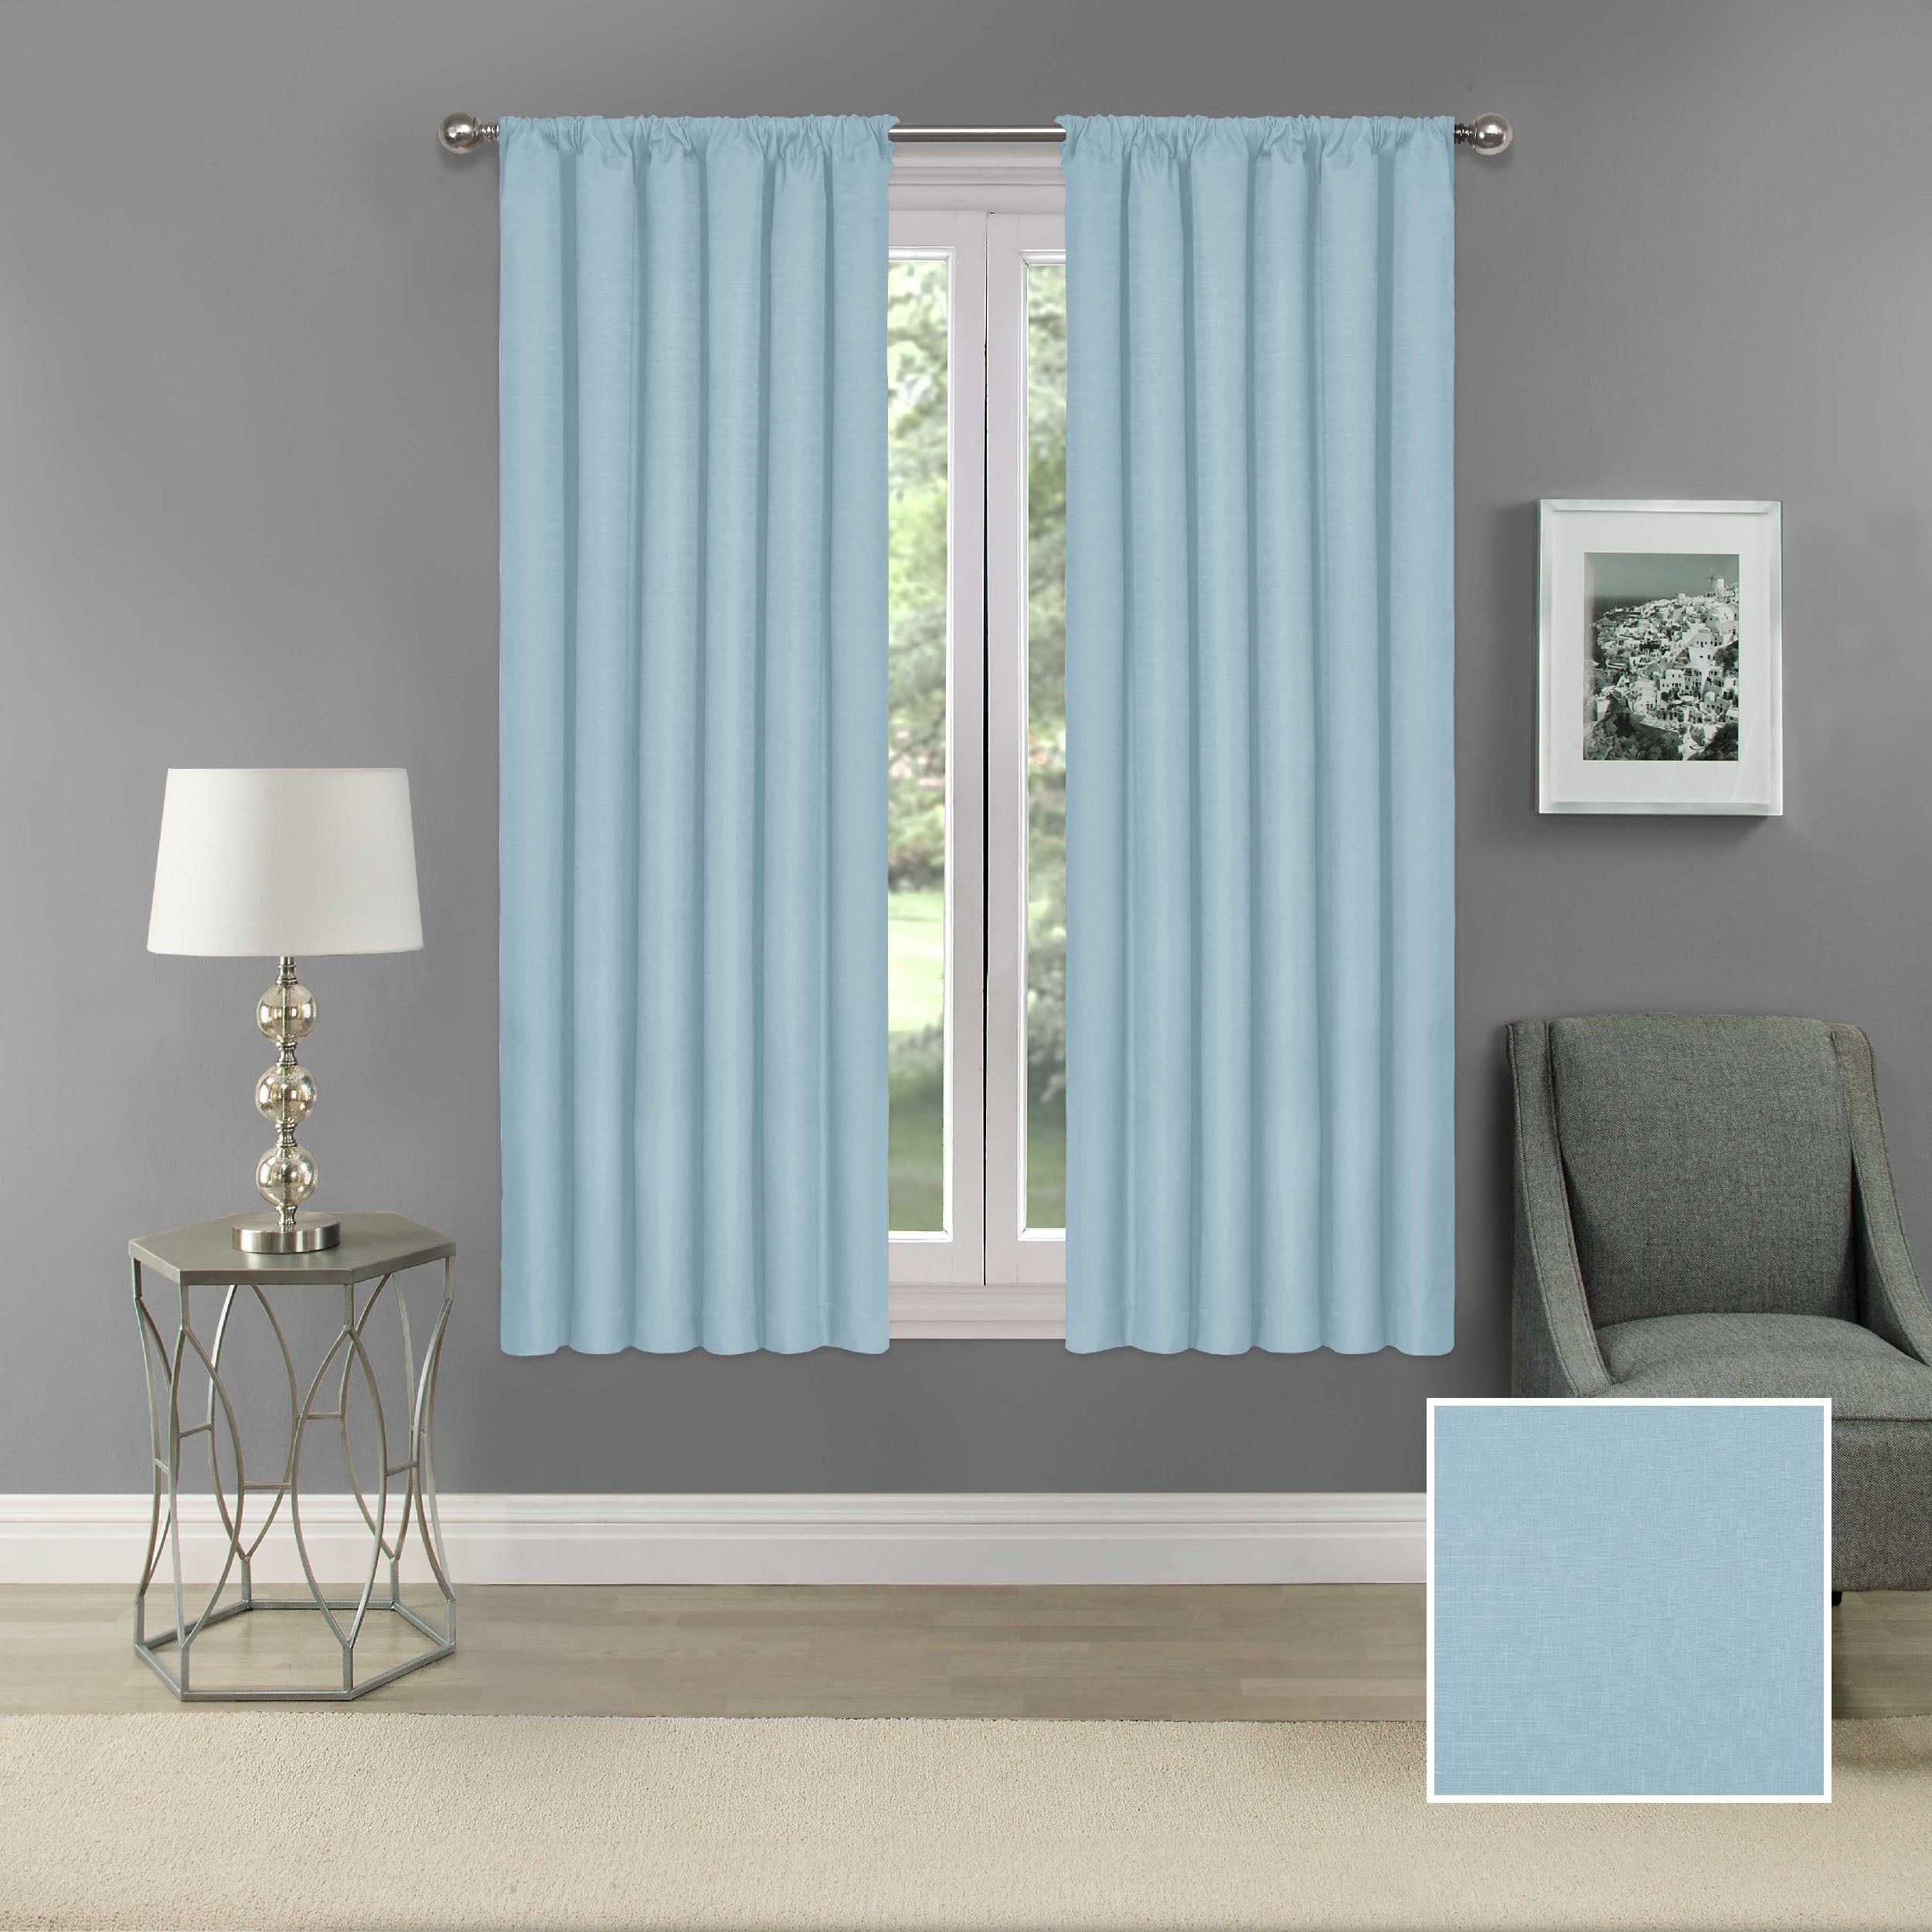 Eclipse Kendall Blackout Window Curtain Panel In Eclipse Kendall Blackout Window Curtain Panels (View 6 of 20)